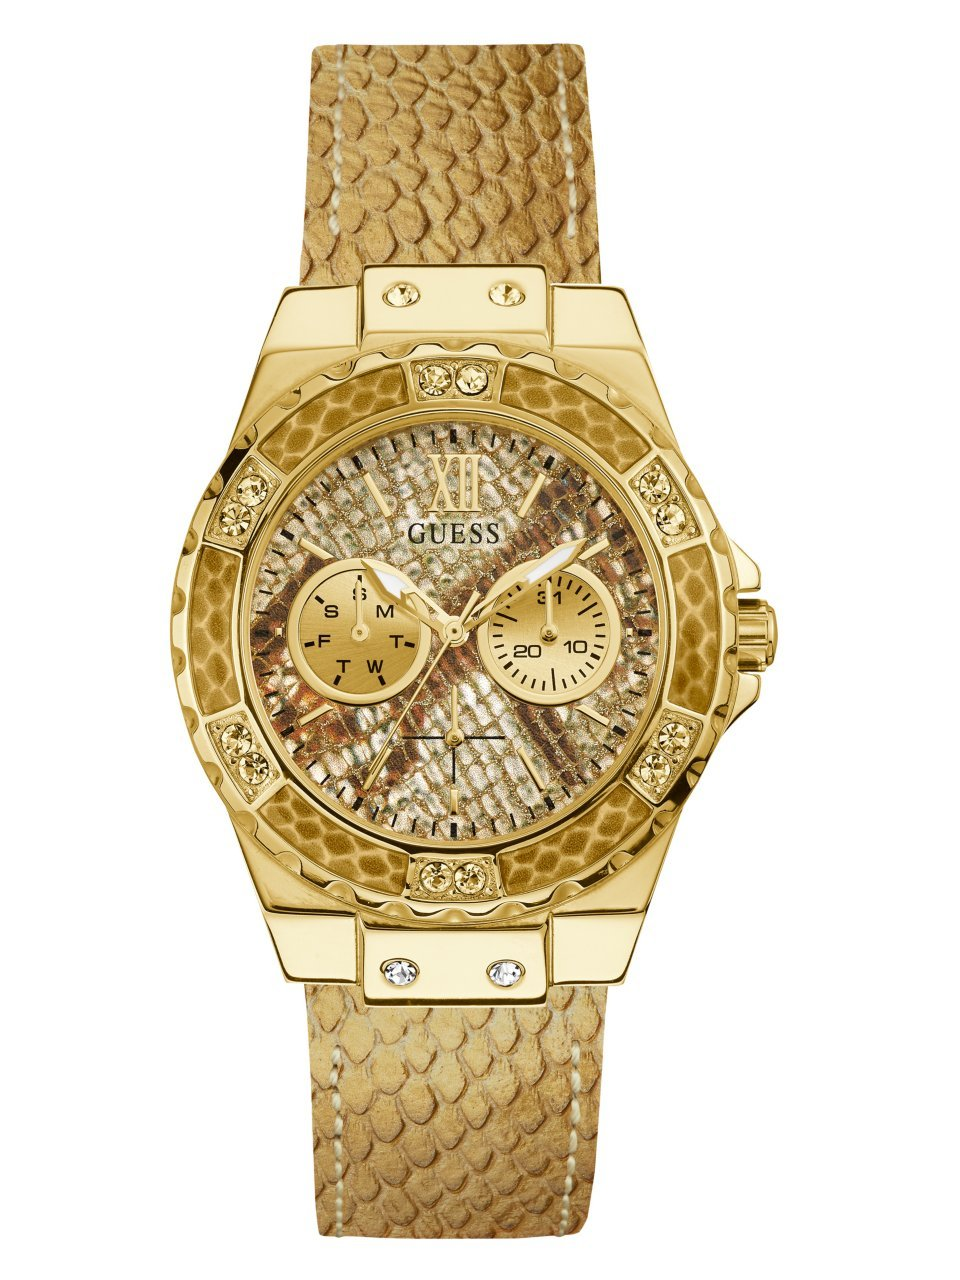 Guess Women's Stainless Steel Textured Leather Strap Crystal Accented Watch, Color Animal Print/Gold-Tone (Model: U0775L13)